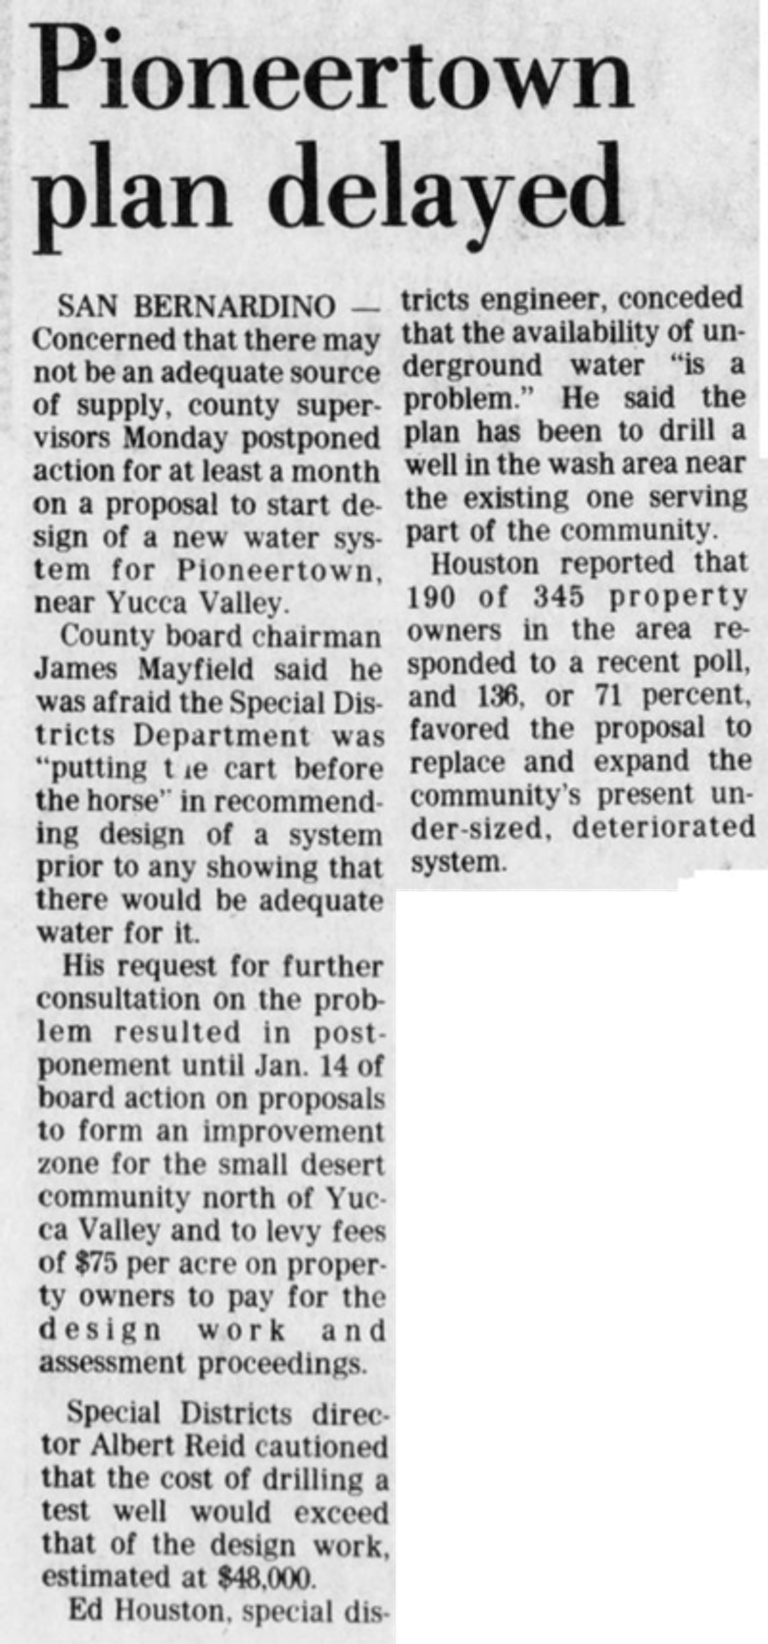 Pioneertown plan delyed article clipping